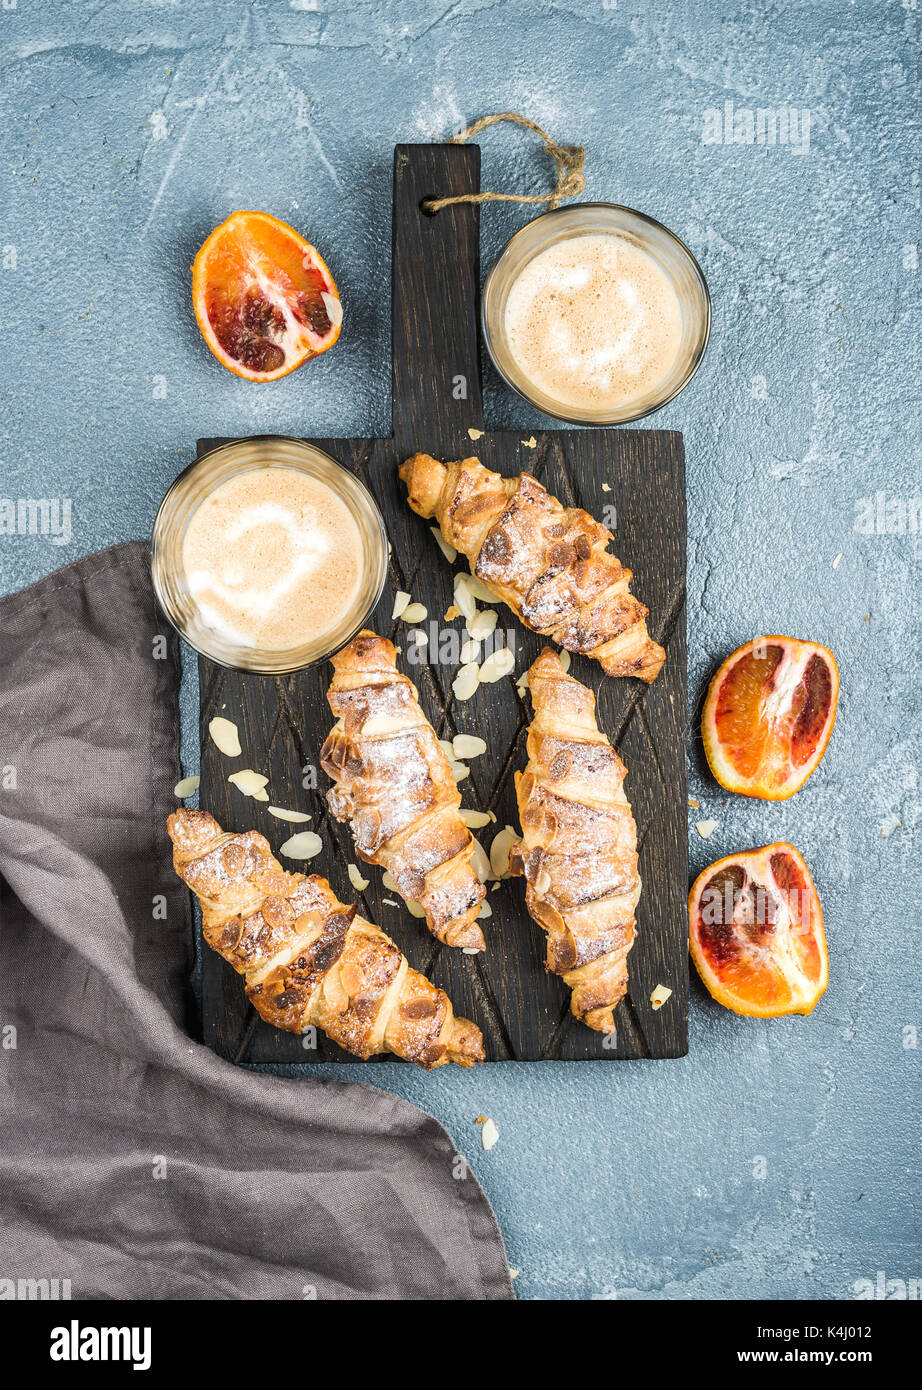 Traditional Italian style home breakfast. Latte in glasses, almond croissants and red bloody Sicilian oranges over concrete textured table - Stock Image